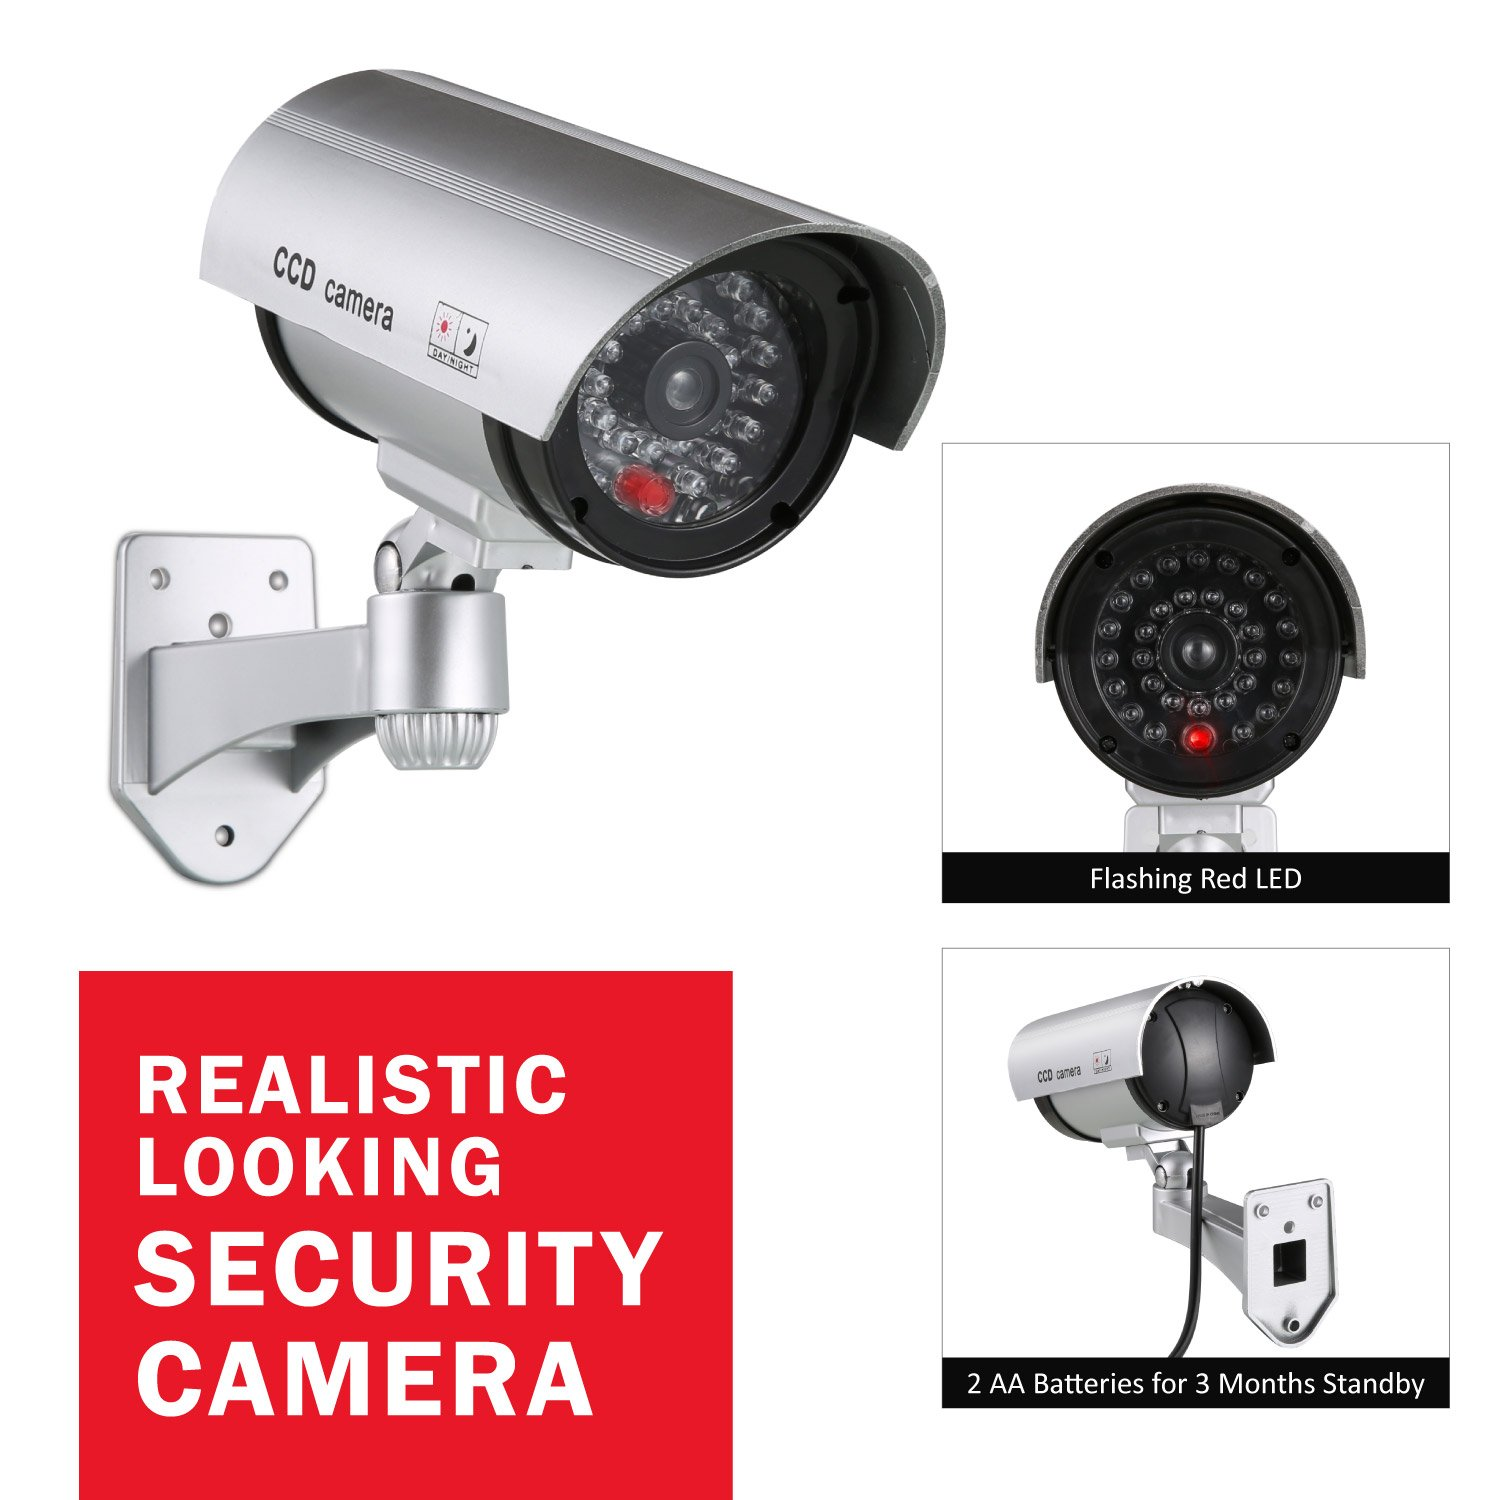 ANNKE Surveillance Dummy Fake Security Camera with Flashing Red LED for Indoor and Outdoor Use by ANNKE